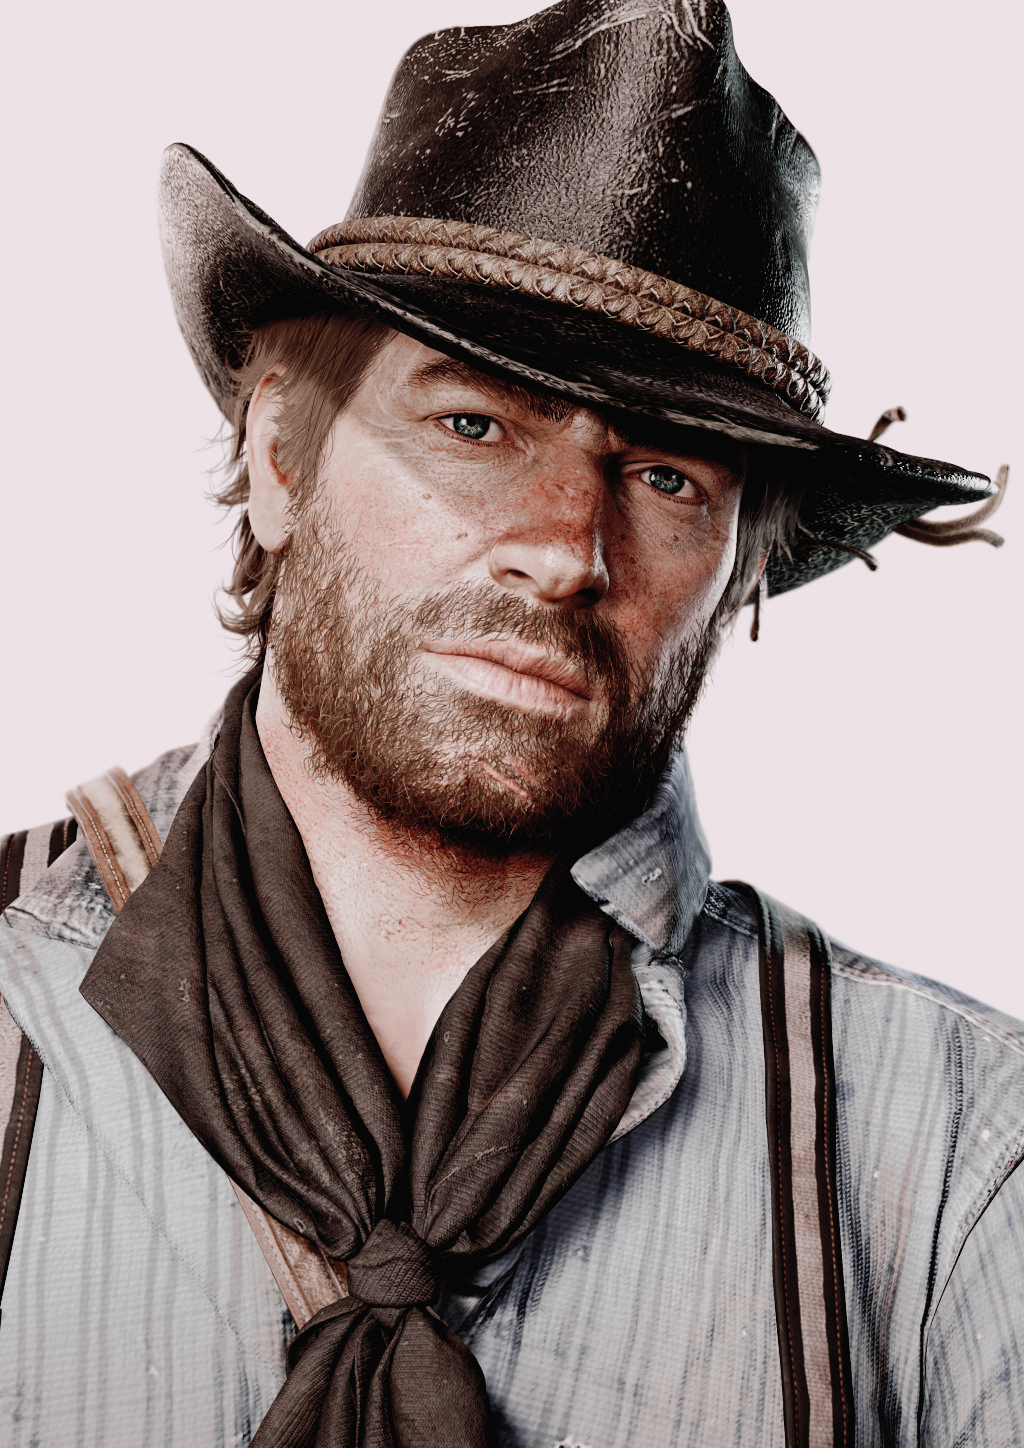 Pin By Dave On Audriana Red Dead Redemption Artwork Red Dead Redemption Red Dead Redemption Art